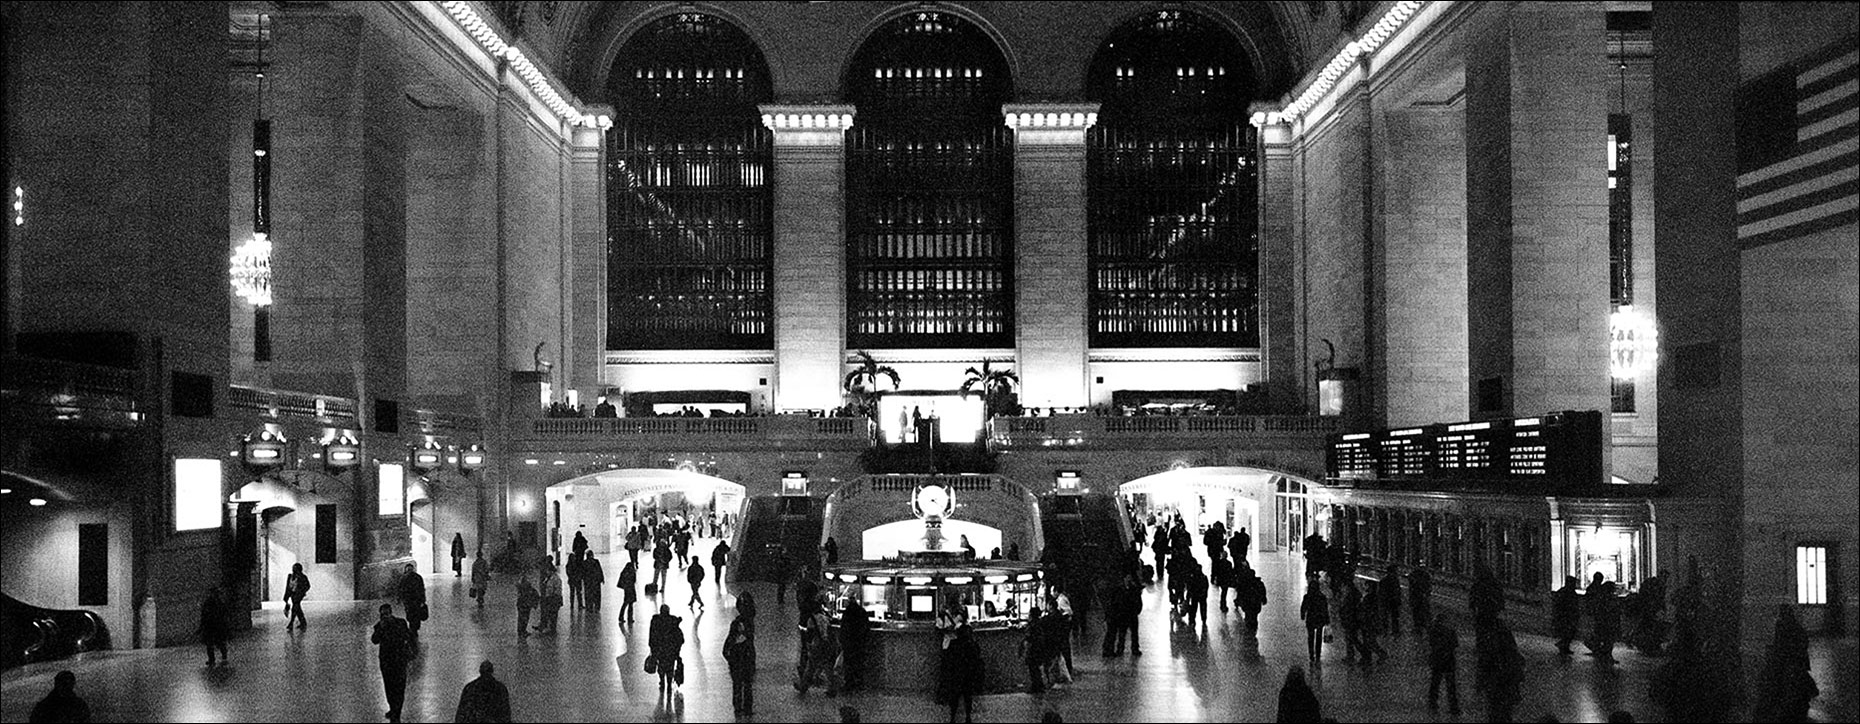 grand-central-station-NYC-USA ©Paul Hampton Photographer Glasgow